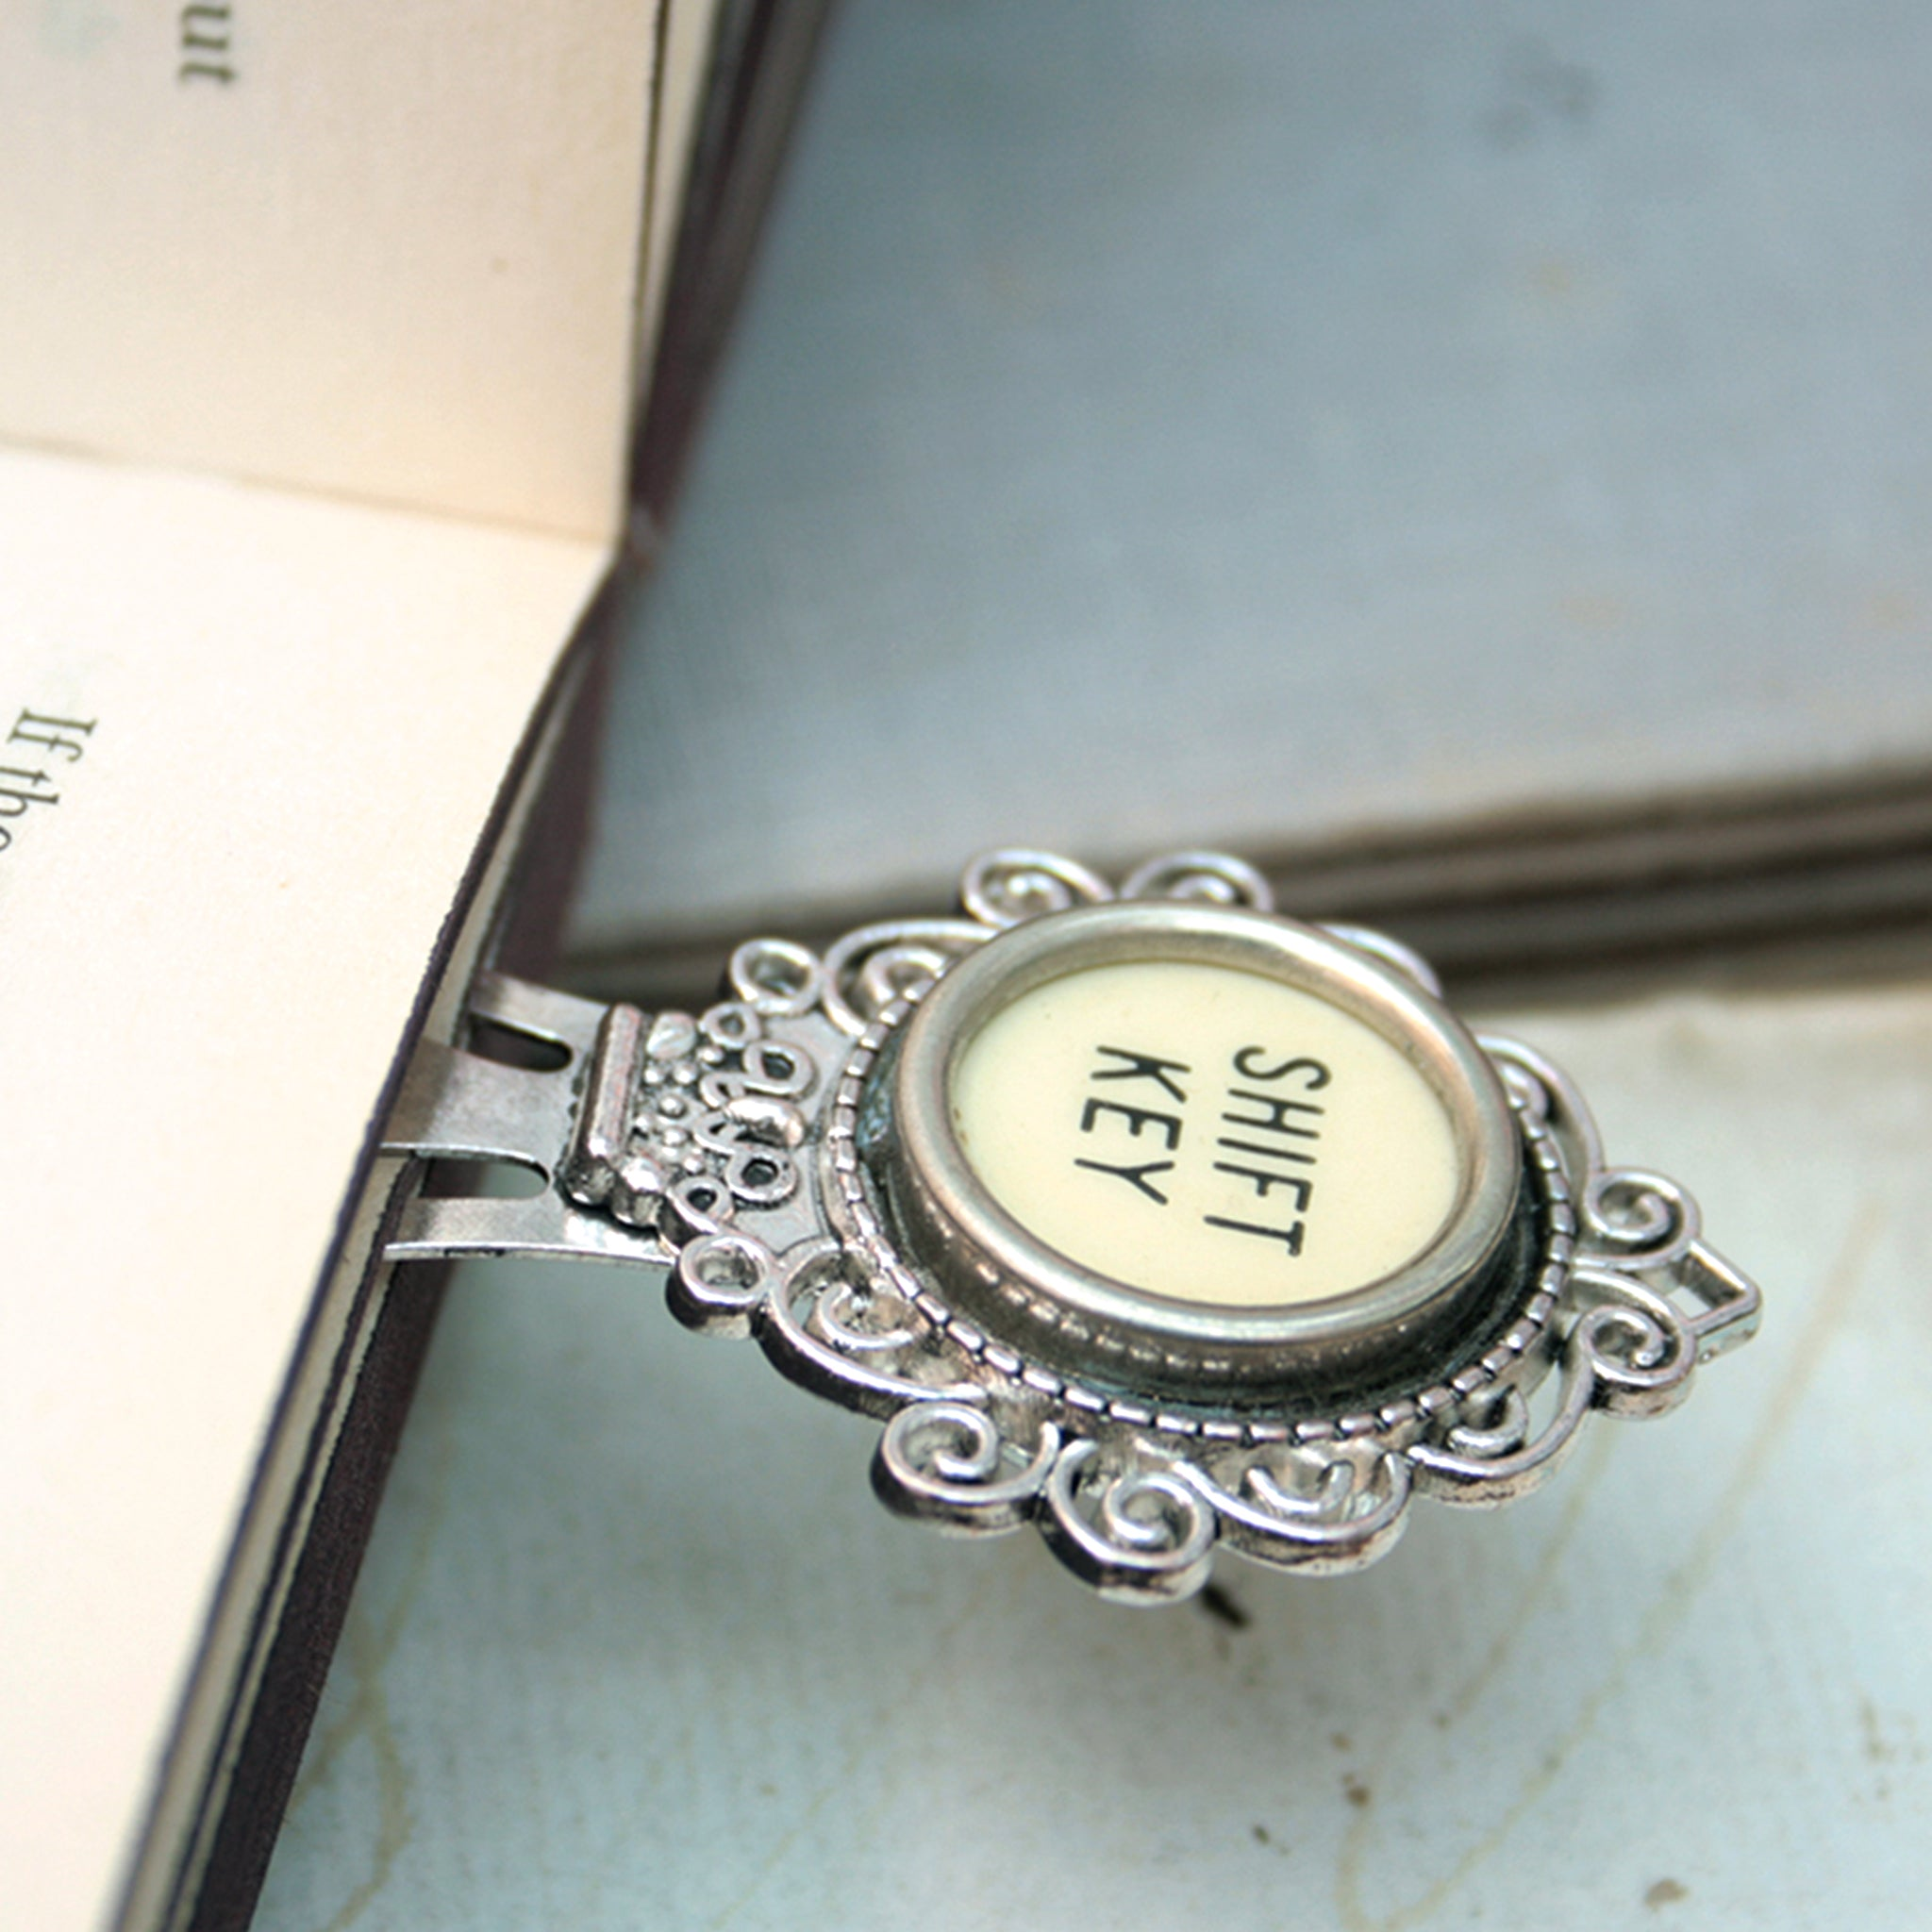 Shift Key metal bookmark for books - made of authentic vintage typewriter key in ivory color